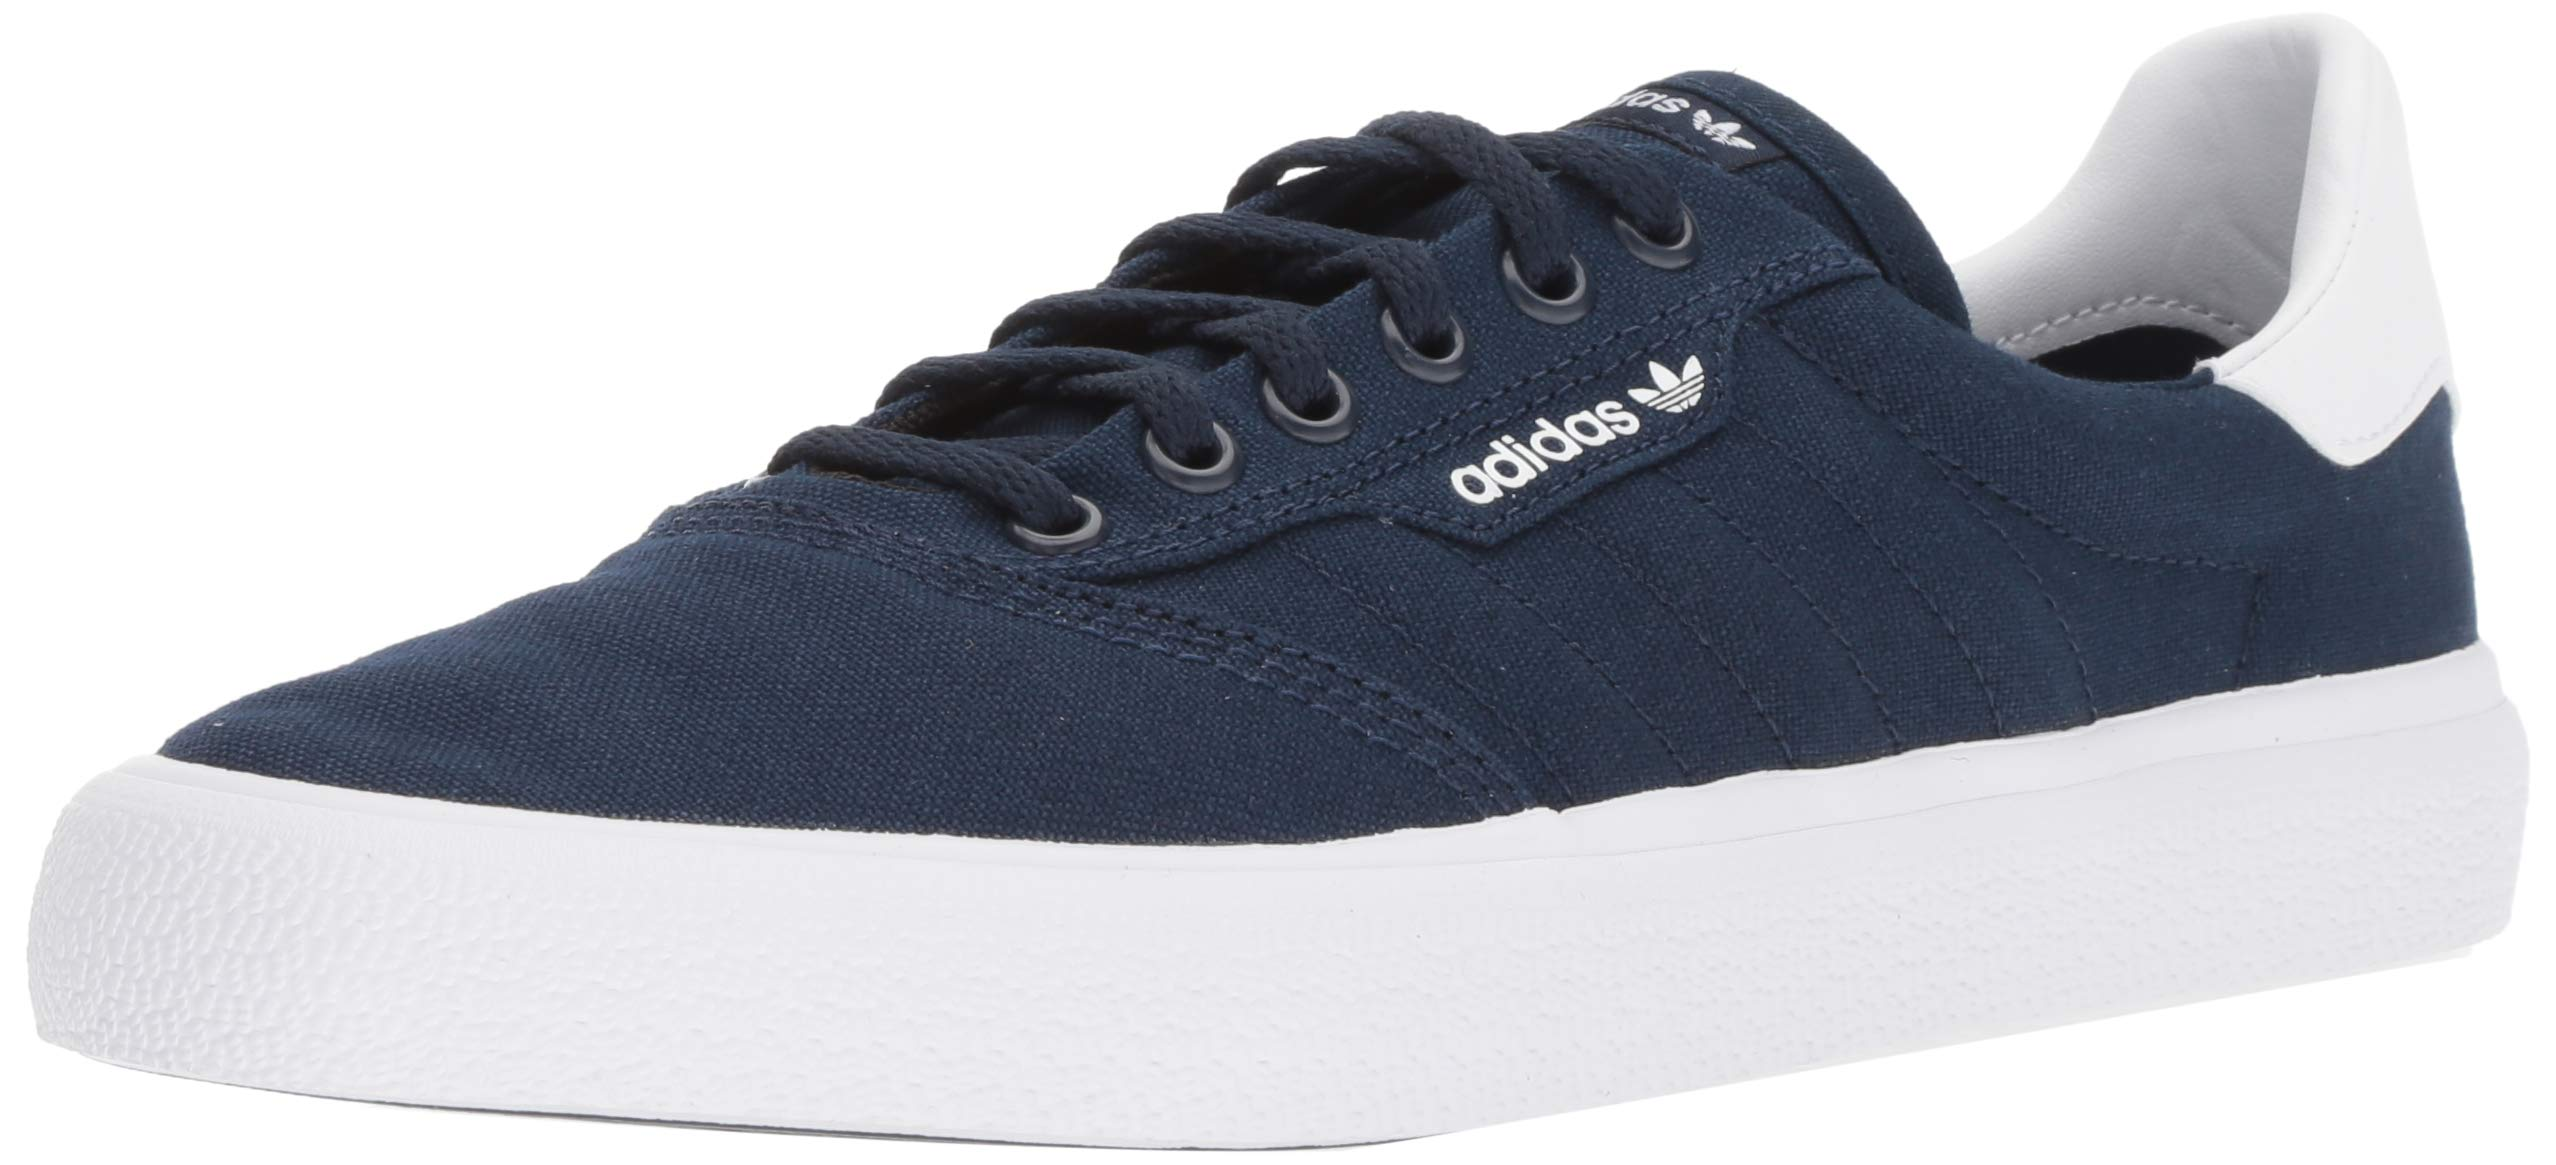 sale retailer 6c4ea 3bb3e Galleon - Adidas Originals 3MC Skate Shoe, Collegiate NavyWhite, 7.5 M US